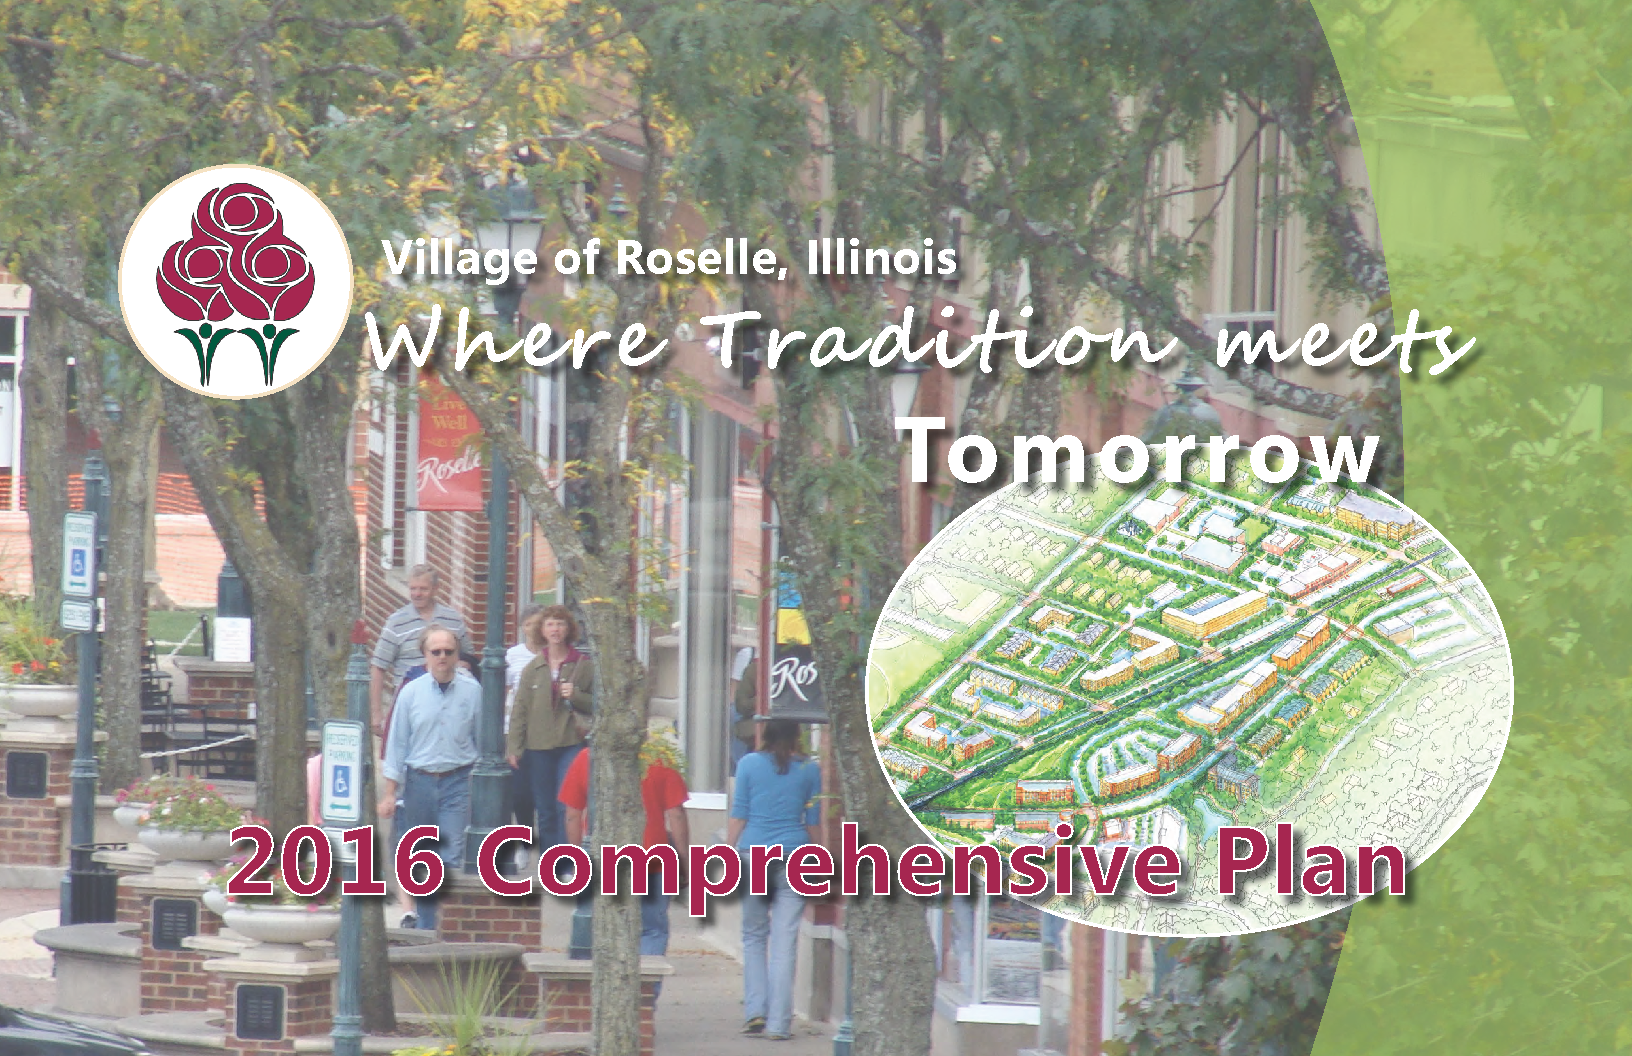 roselle-comp-plan_Page_001.png